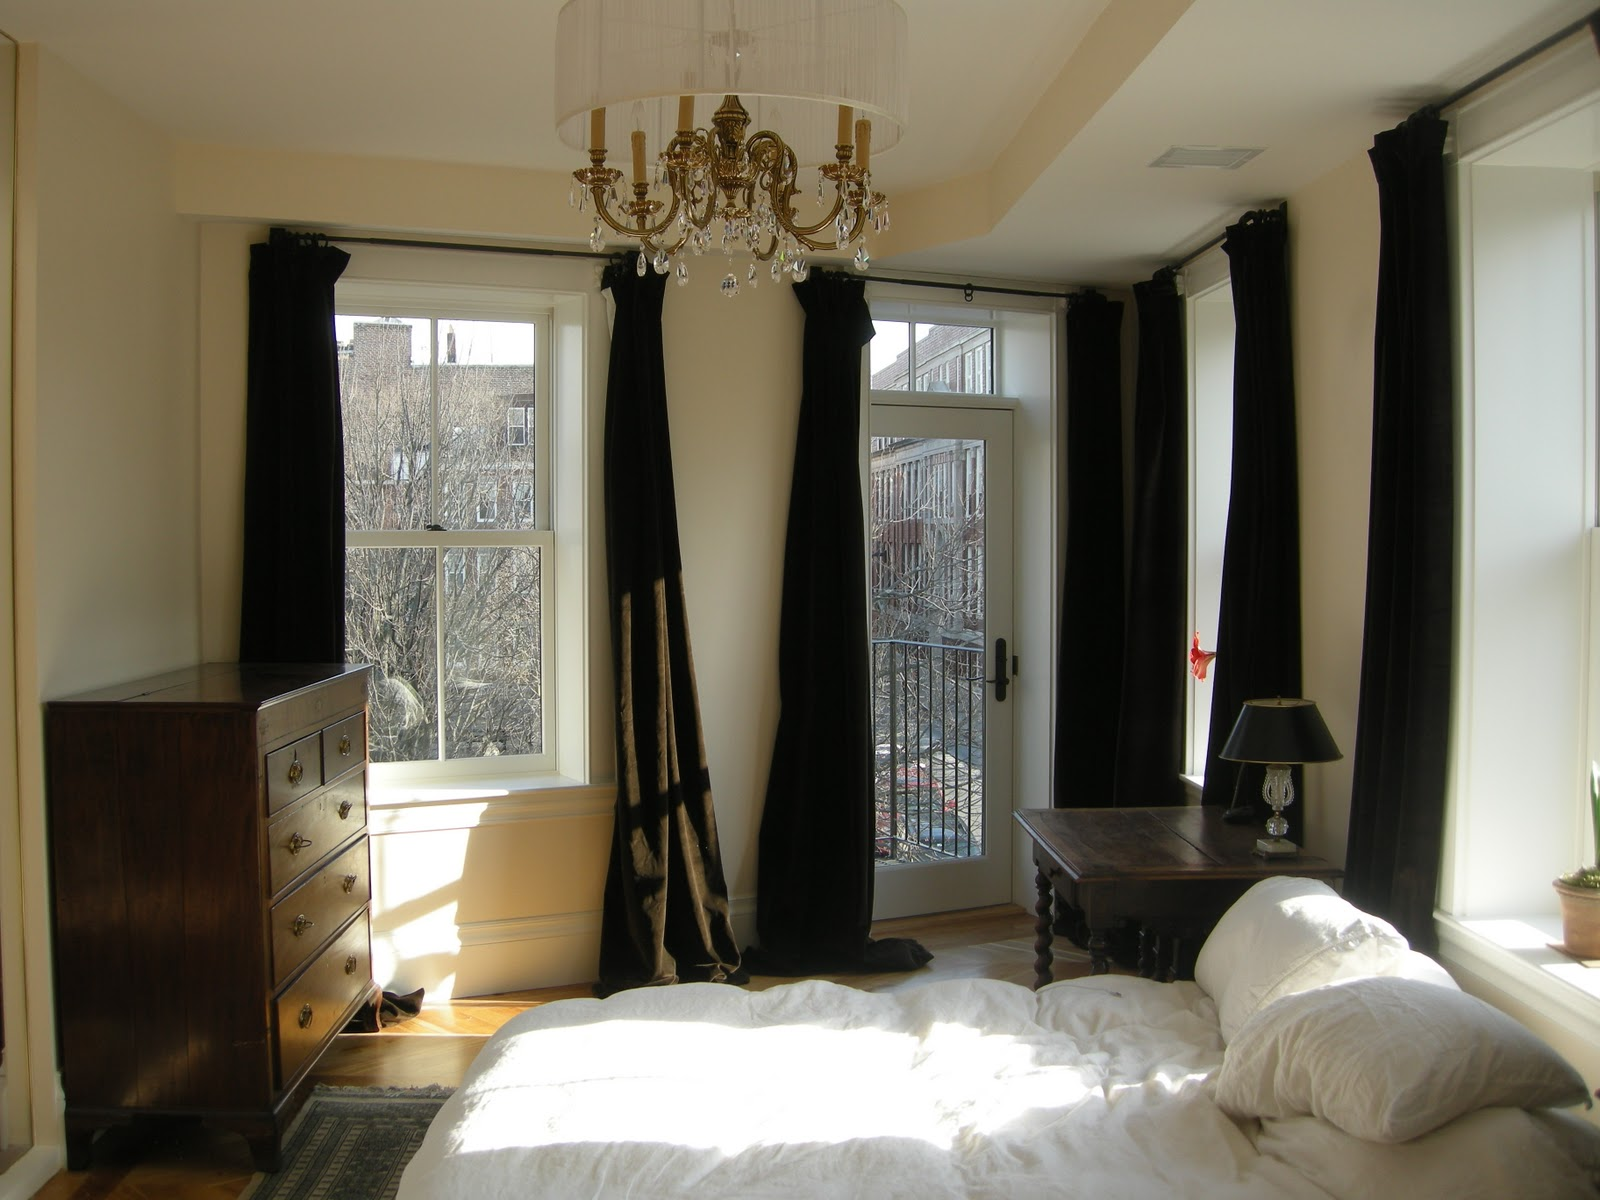 Redbrickbuilding Master Bedroom Curtains: dark curtains small room